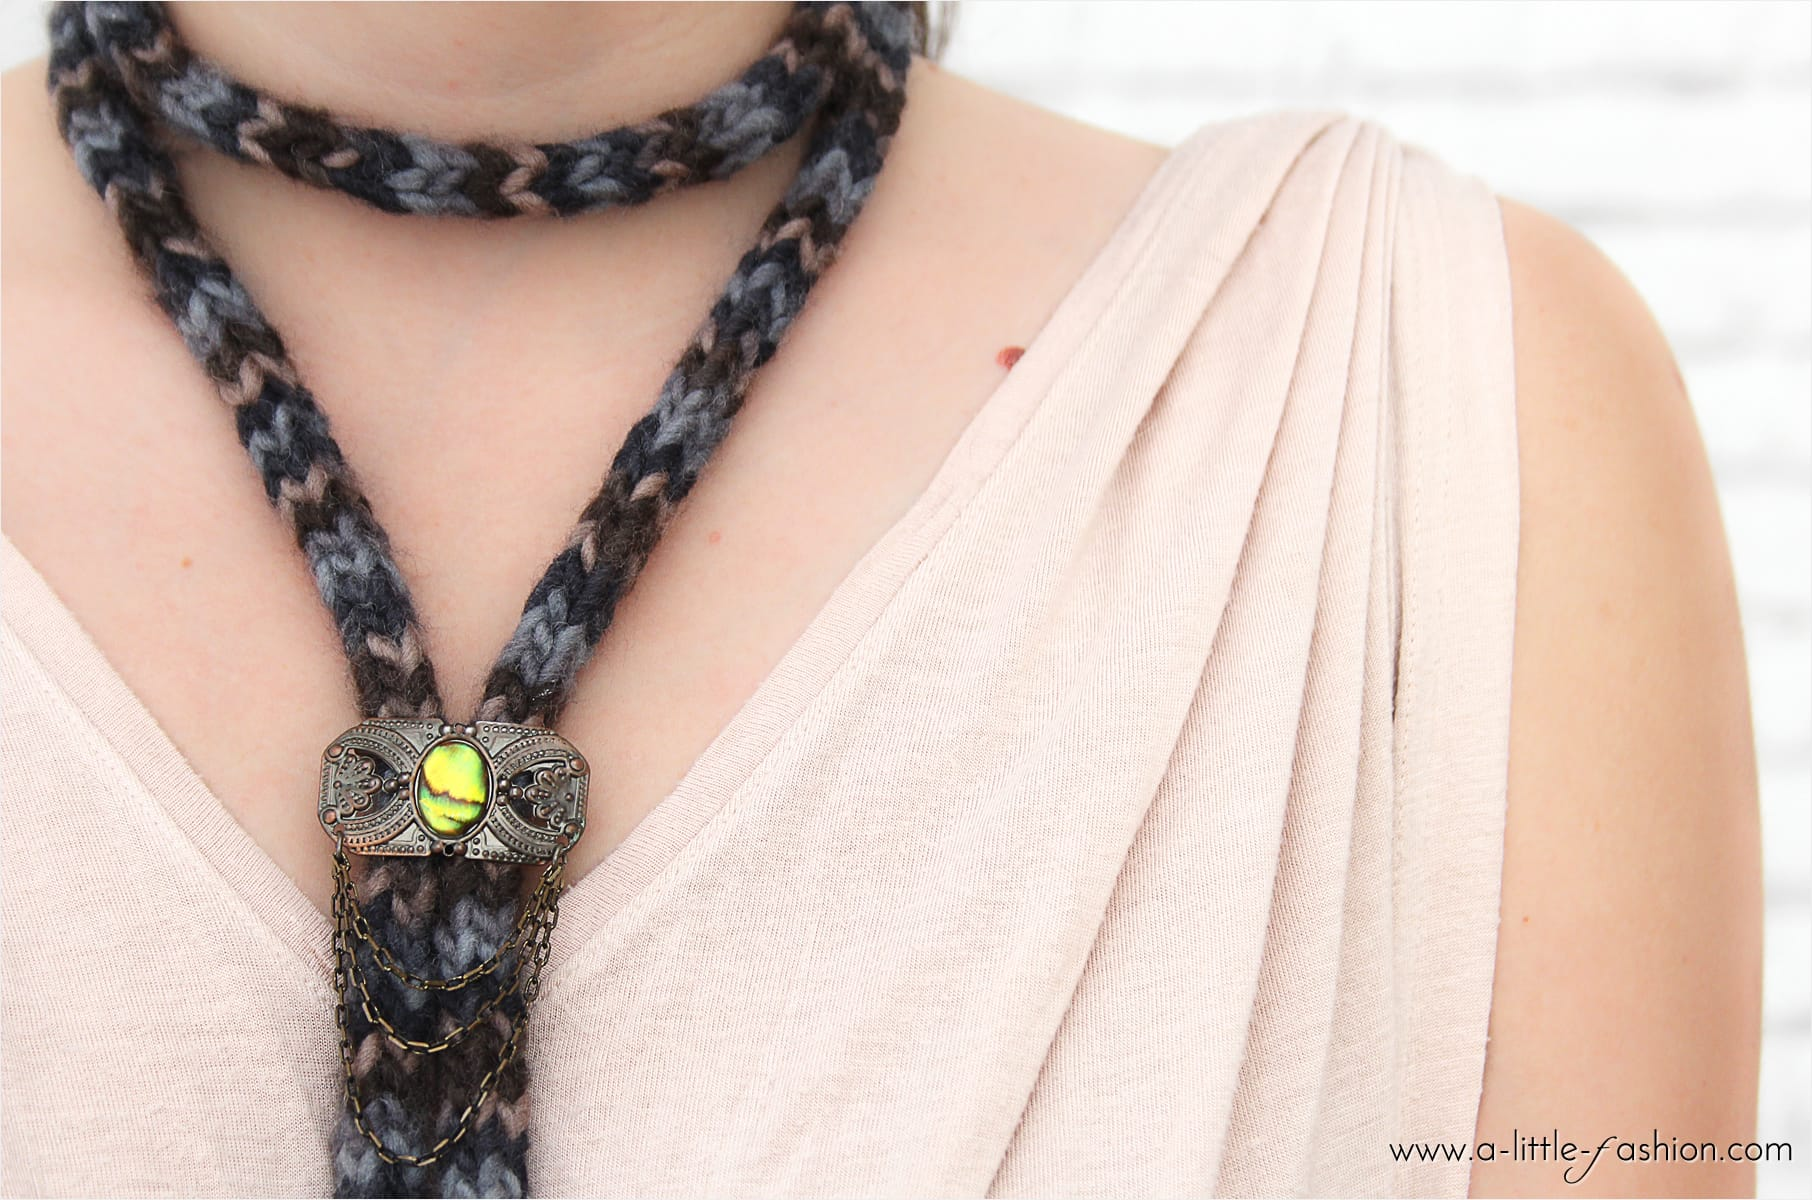 Herbstlicher Choker mit Strickliesel | A Little Fashion